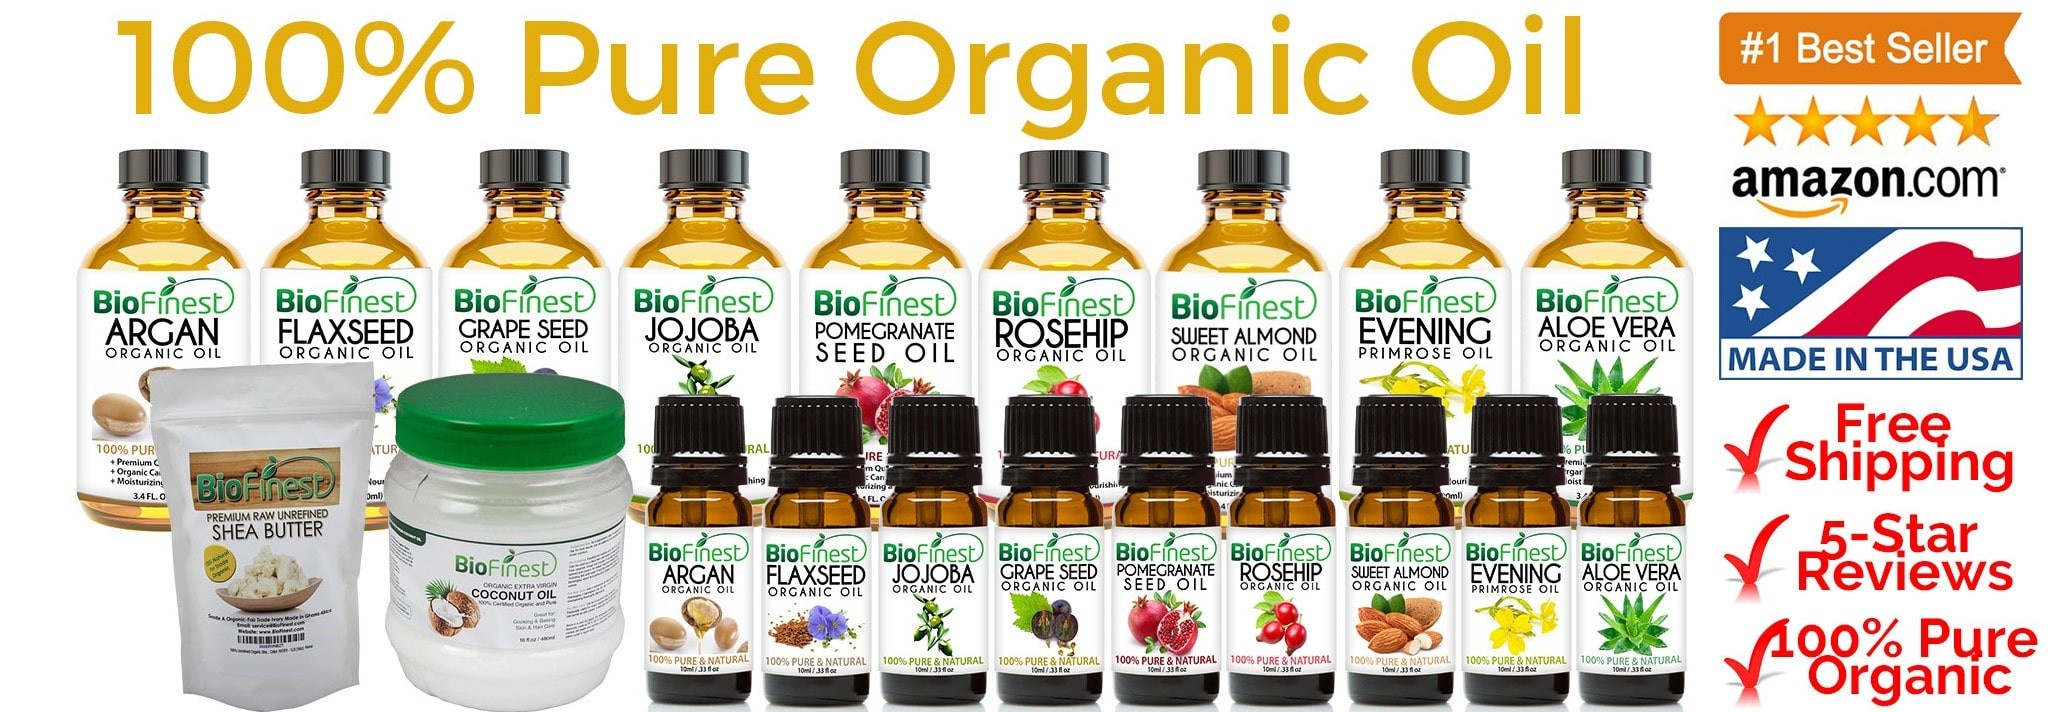 Biofinest 100% Pure Organic Oil (Available in 10ml and 100ml)